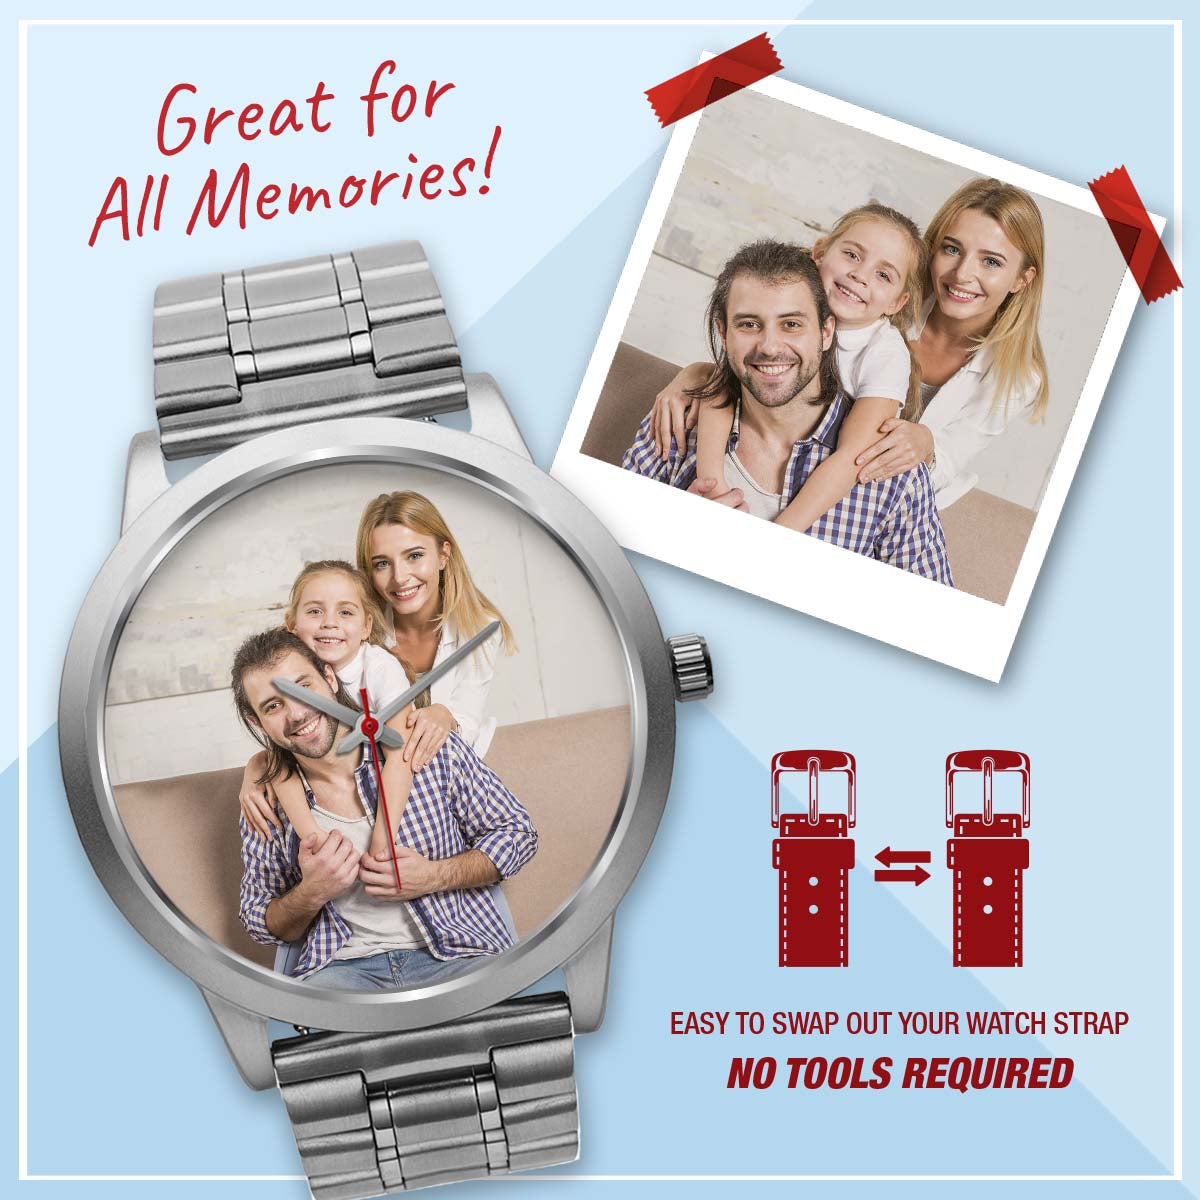 PERSONALIZED watch - upload your memories photos